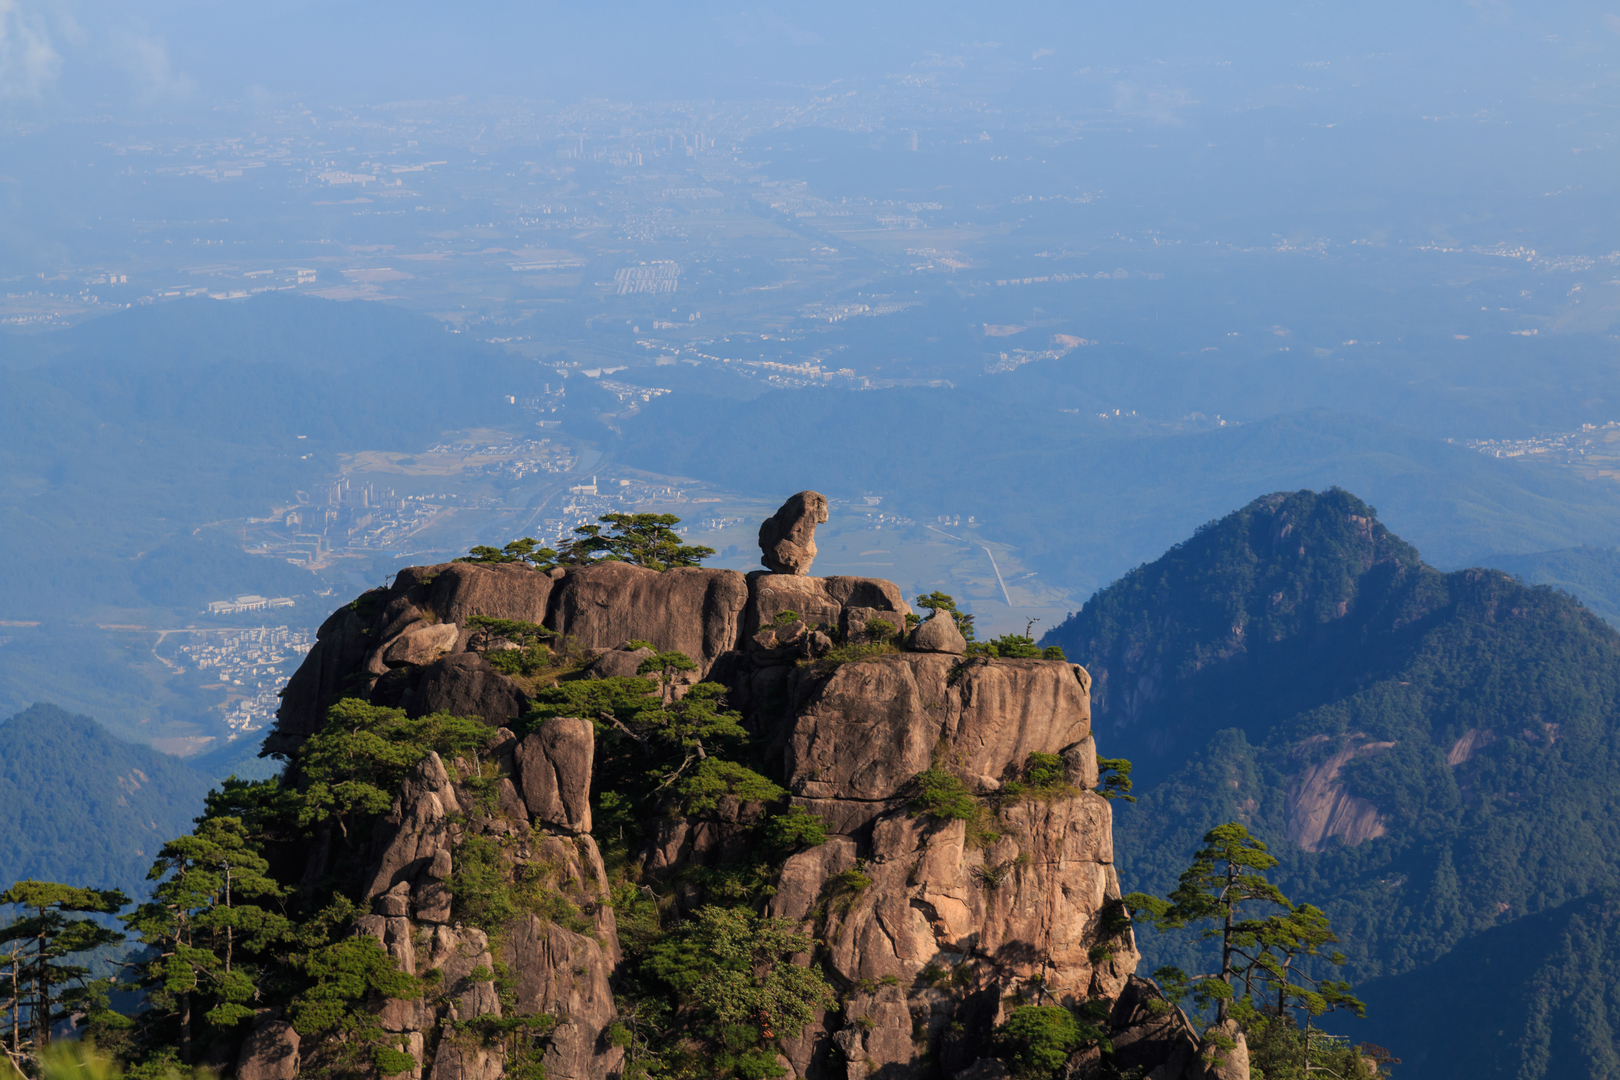 Stone Monkey Watching the Sea - Felsformation im Huang Shan beim Lions Peak